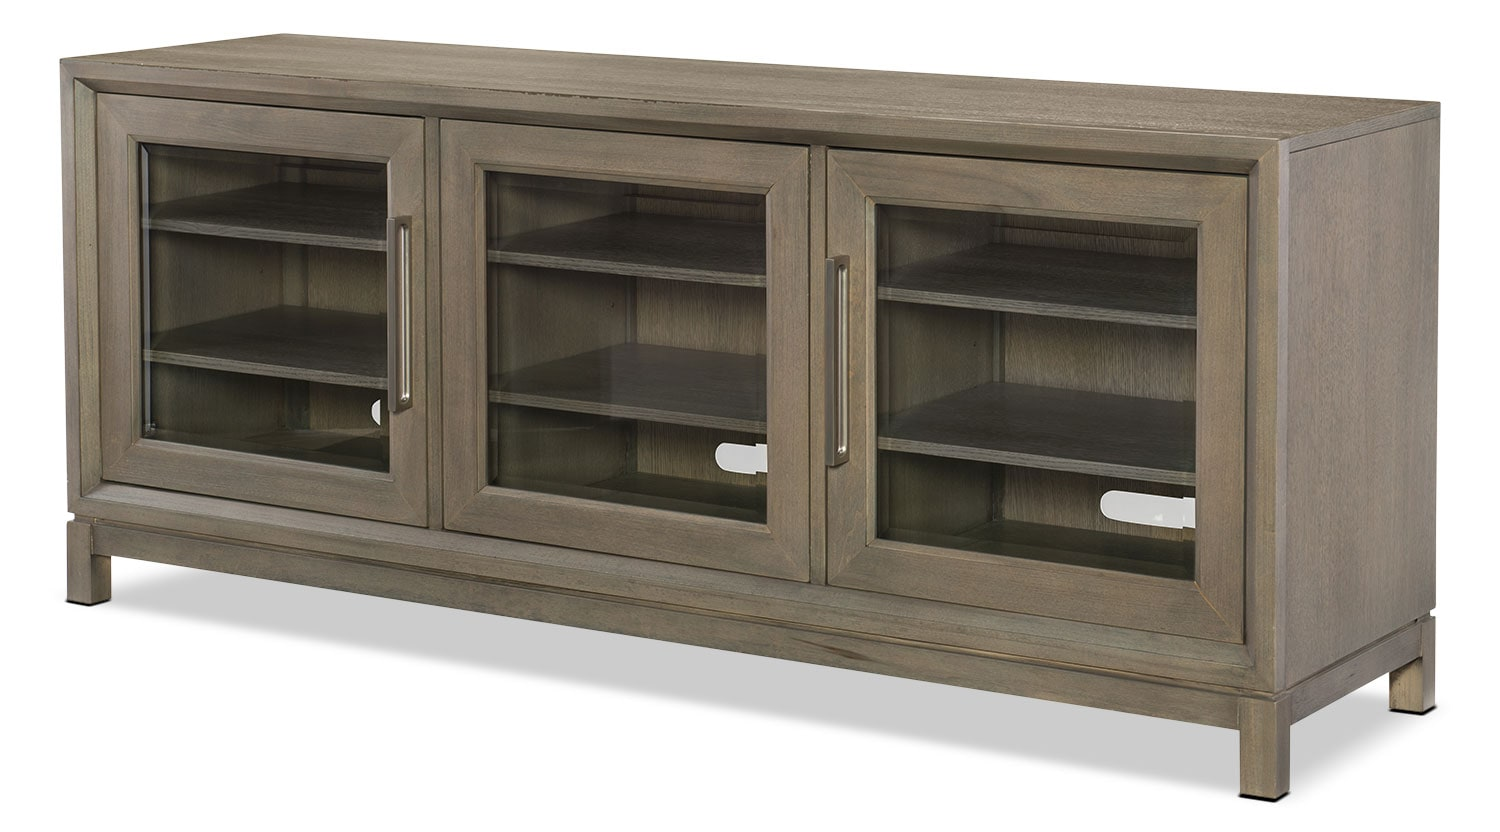 Dining Room Furniture - Rachael Ray Highline Entertainment Console - Greige